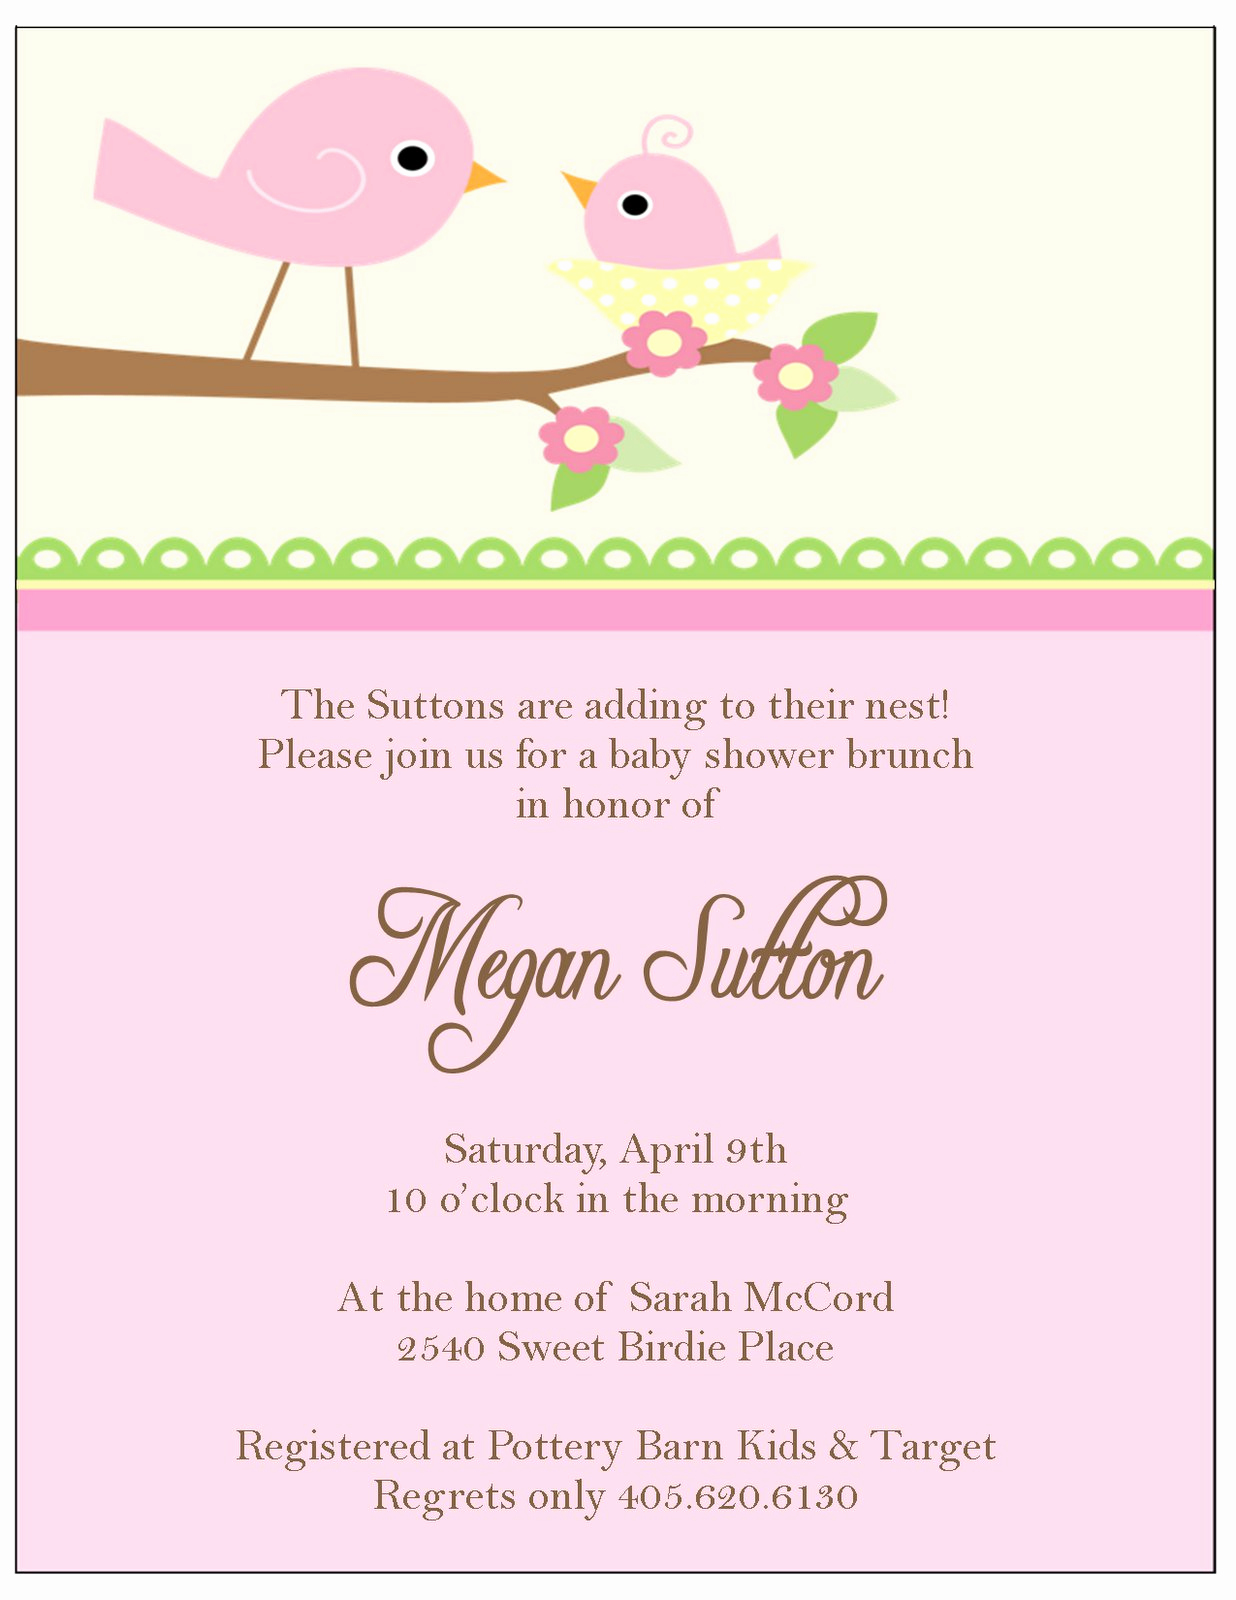 Baby Shower Invitation Templates New Birthday Invitation Mickey Mouse Birthday Invitations